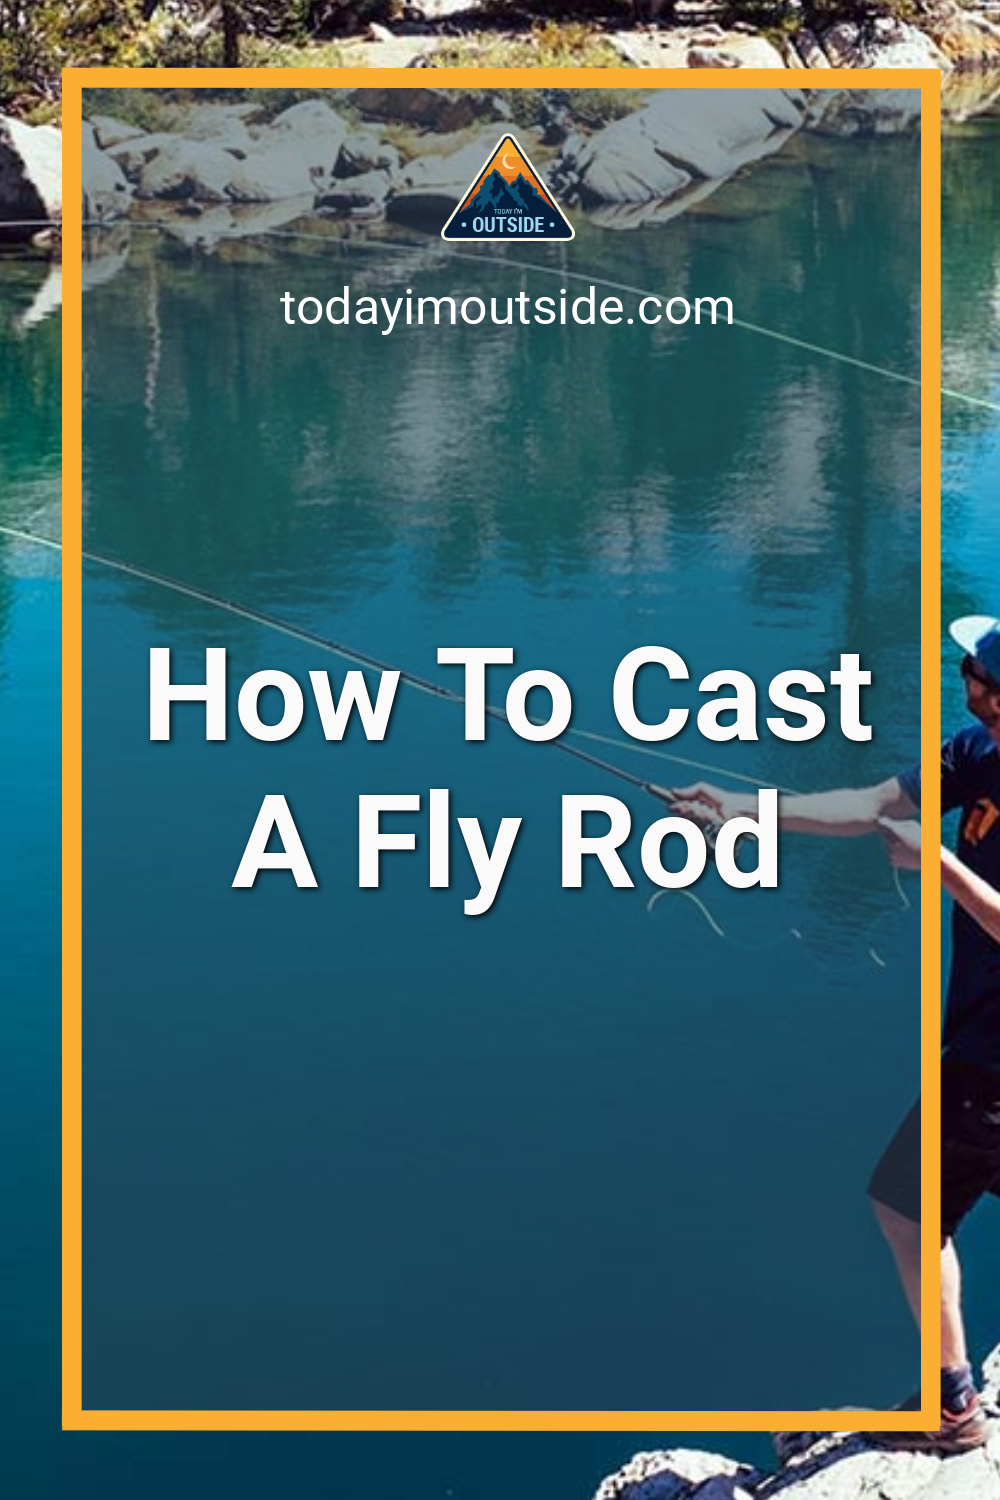 How To Cast A Fly Rod In 2020 Fishing Techniques Fly Fishing Fly Rods